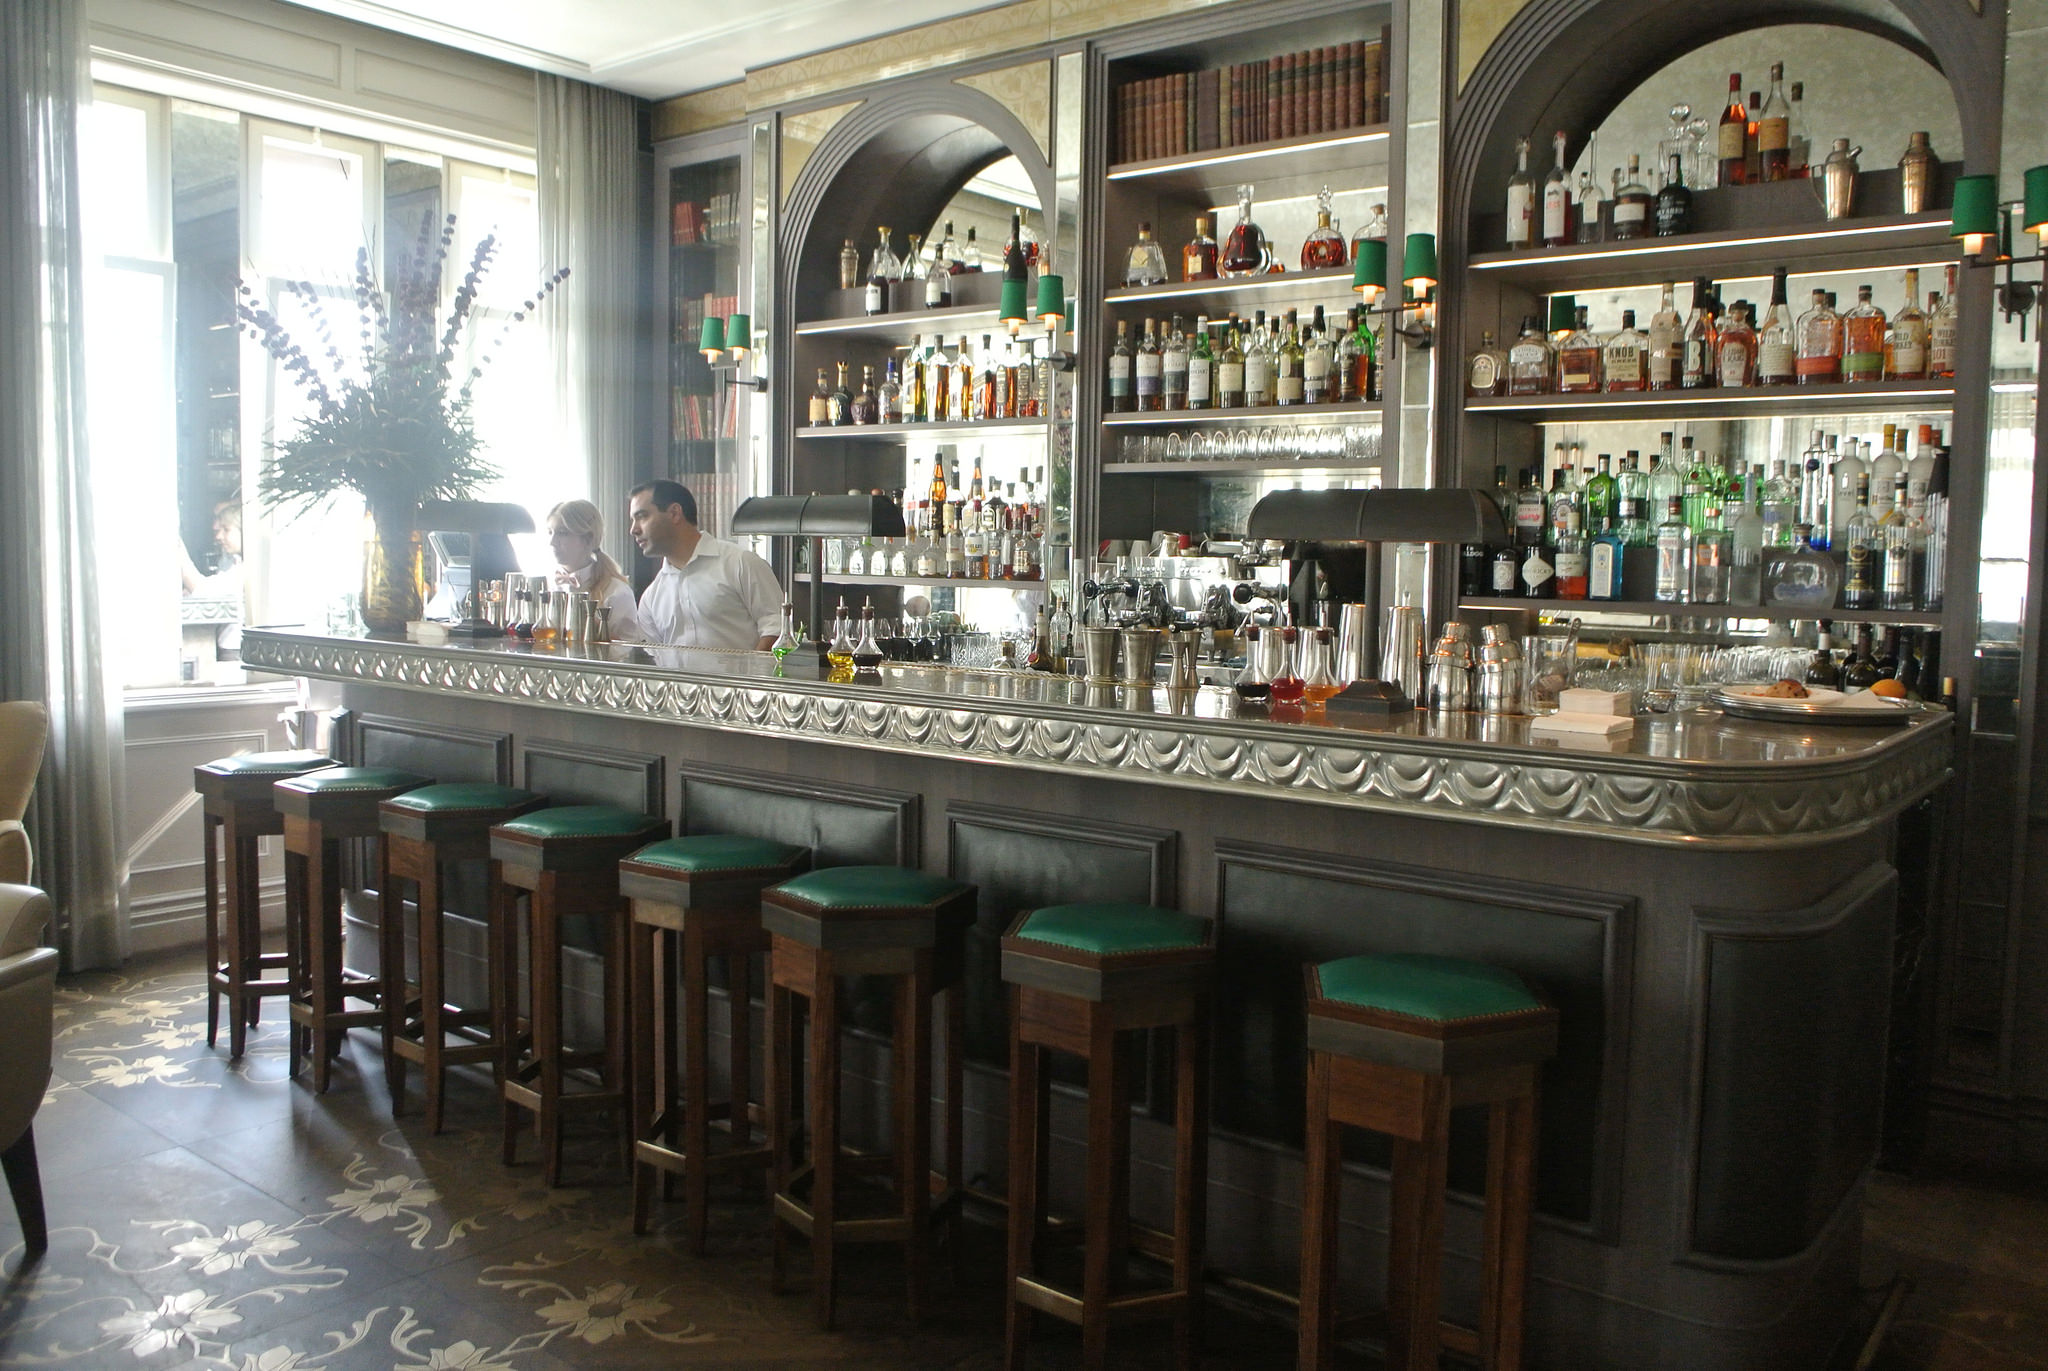 The Norman, bar | © Christina Garofalo/Flickr